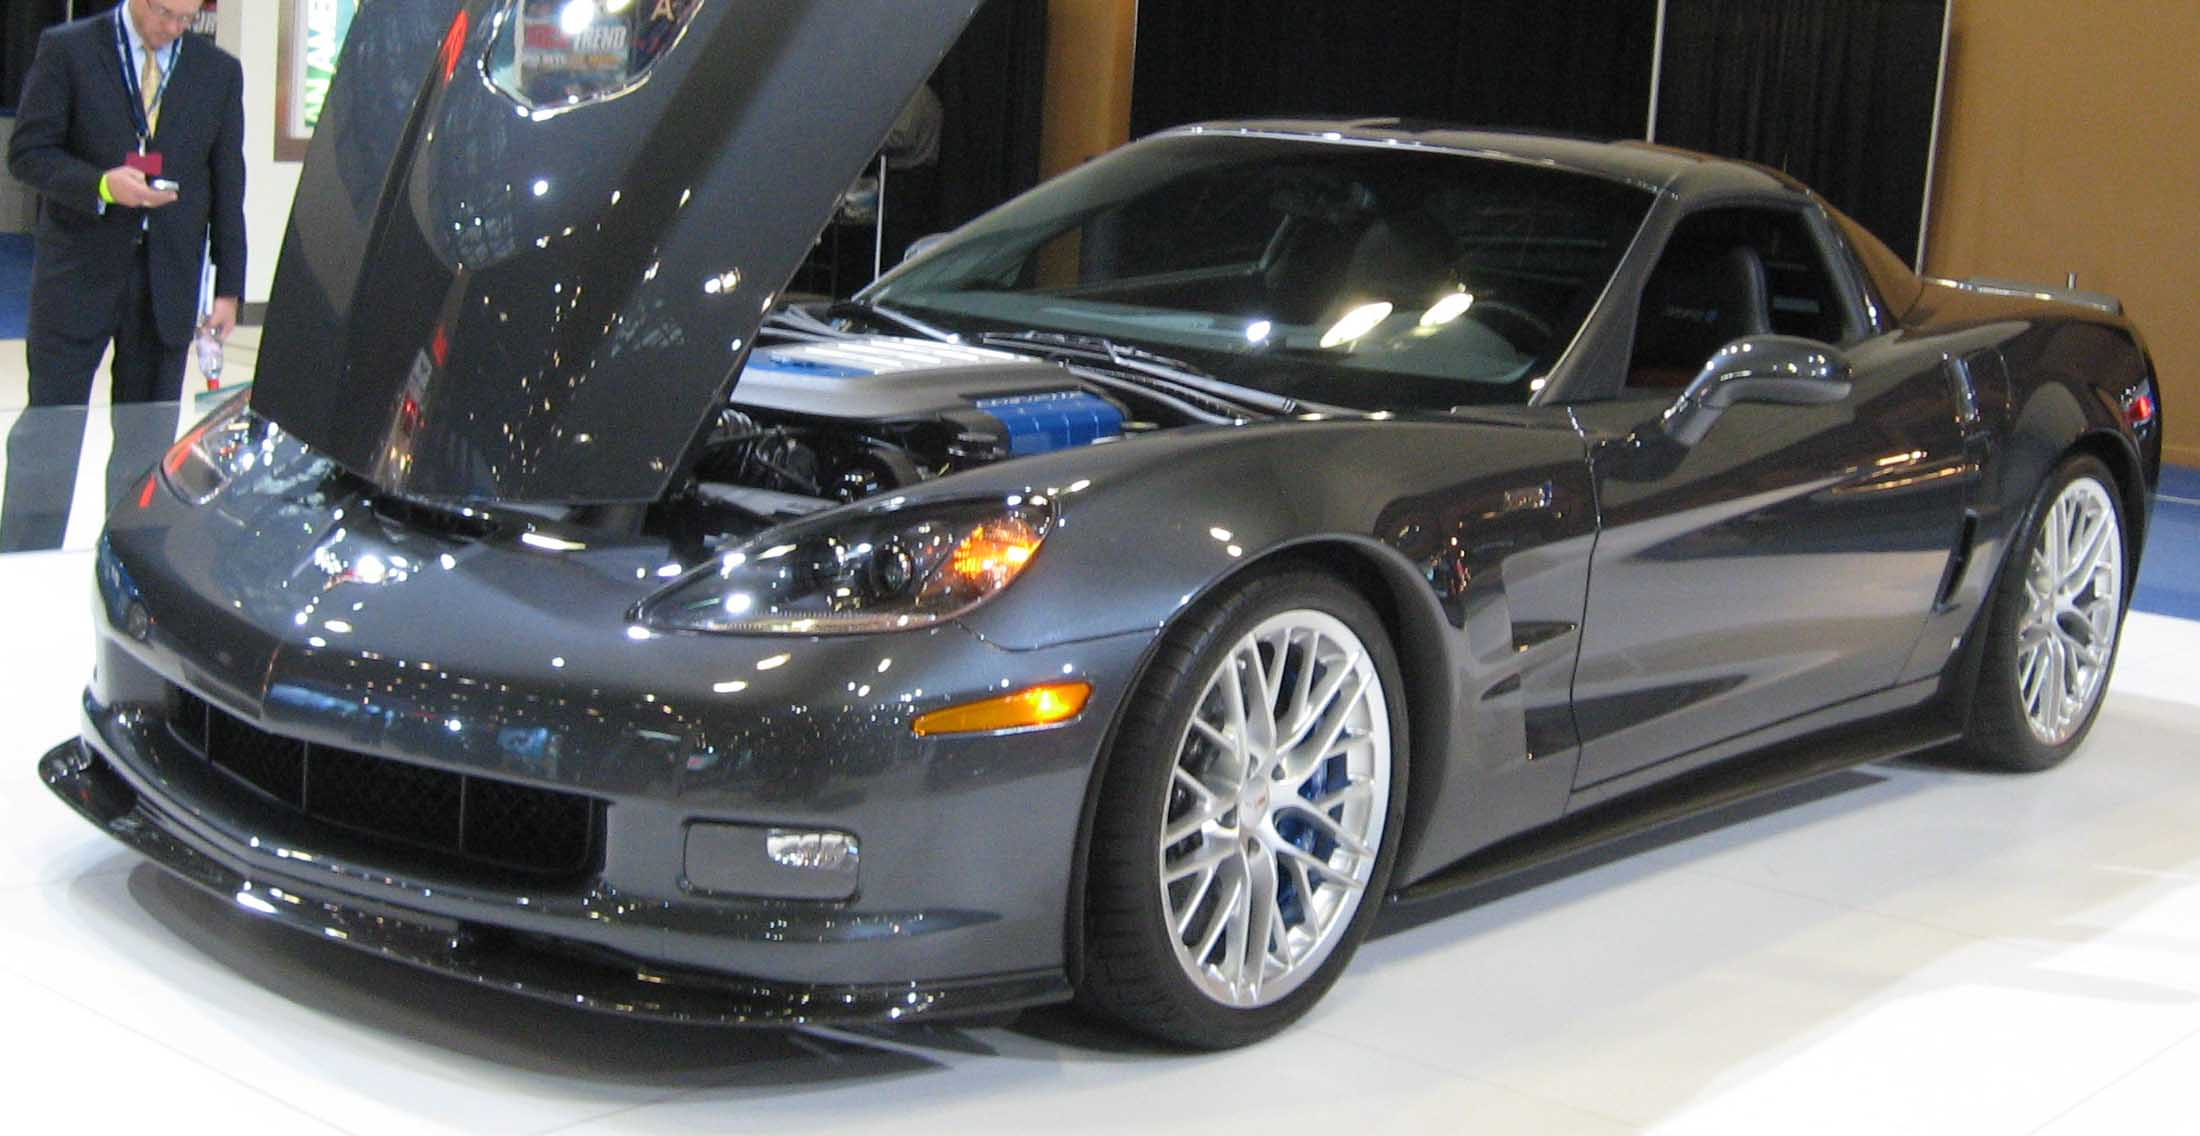 2010 Chevrolet Corvette c6 coupe  pictures information and specs